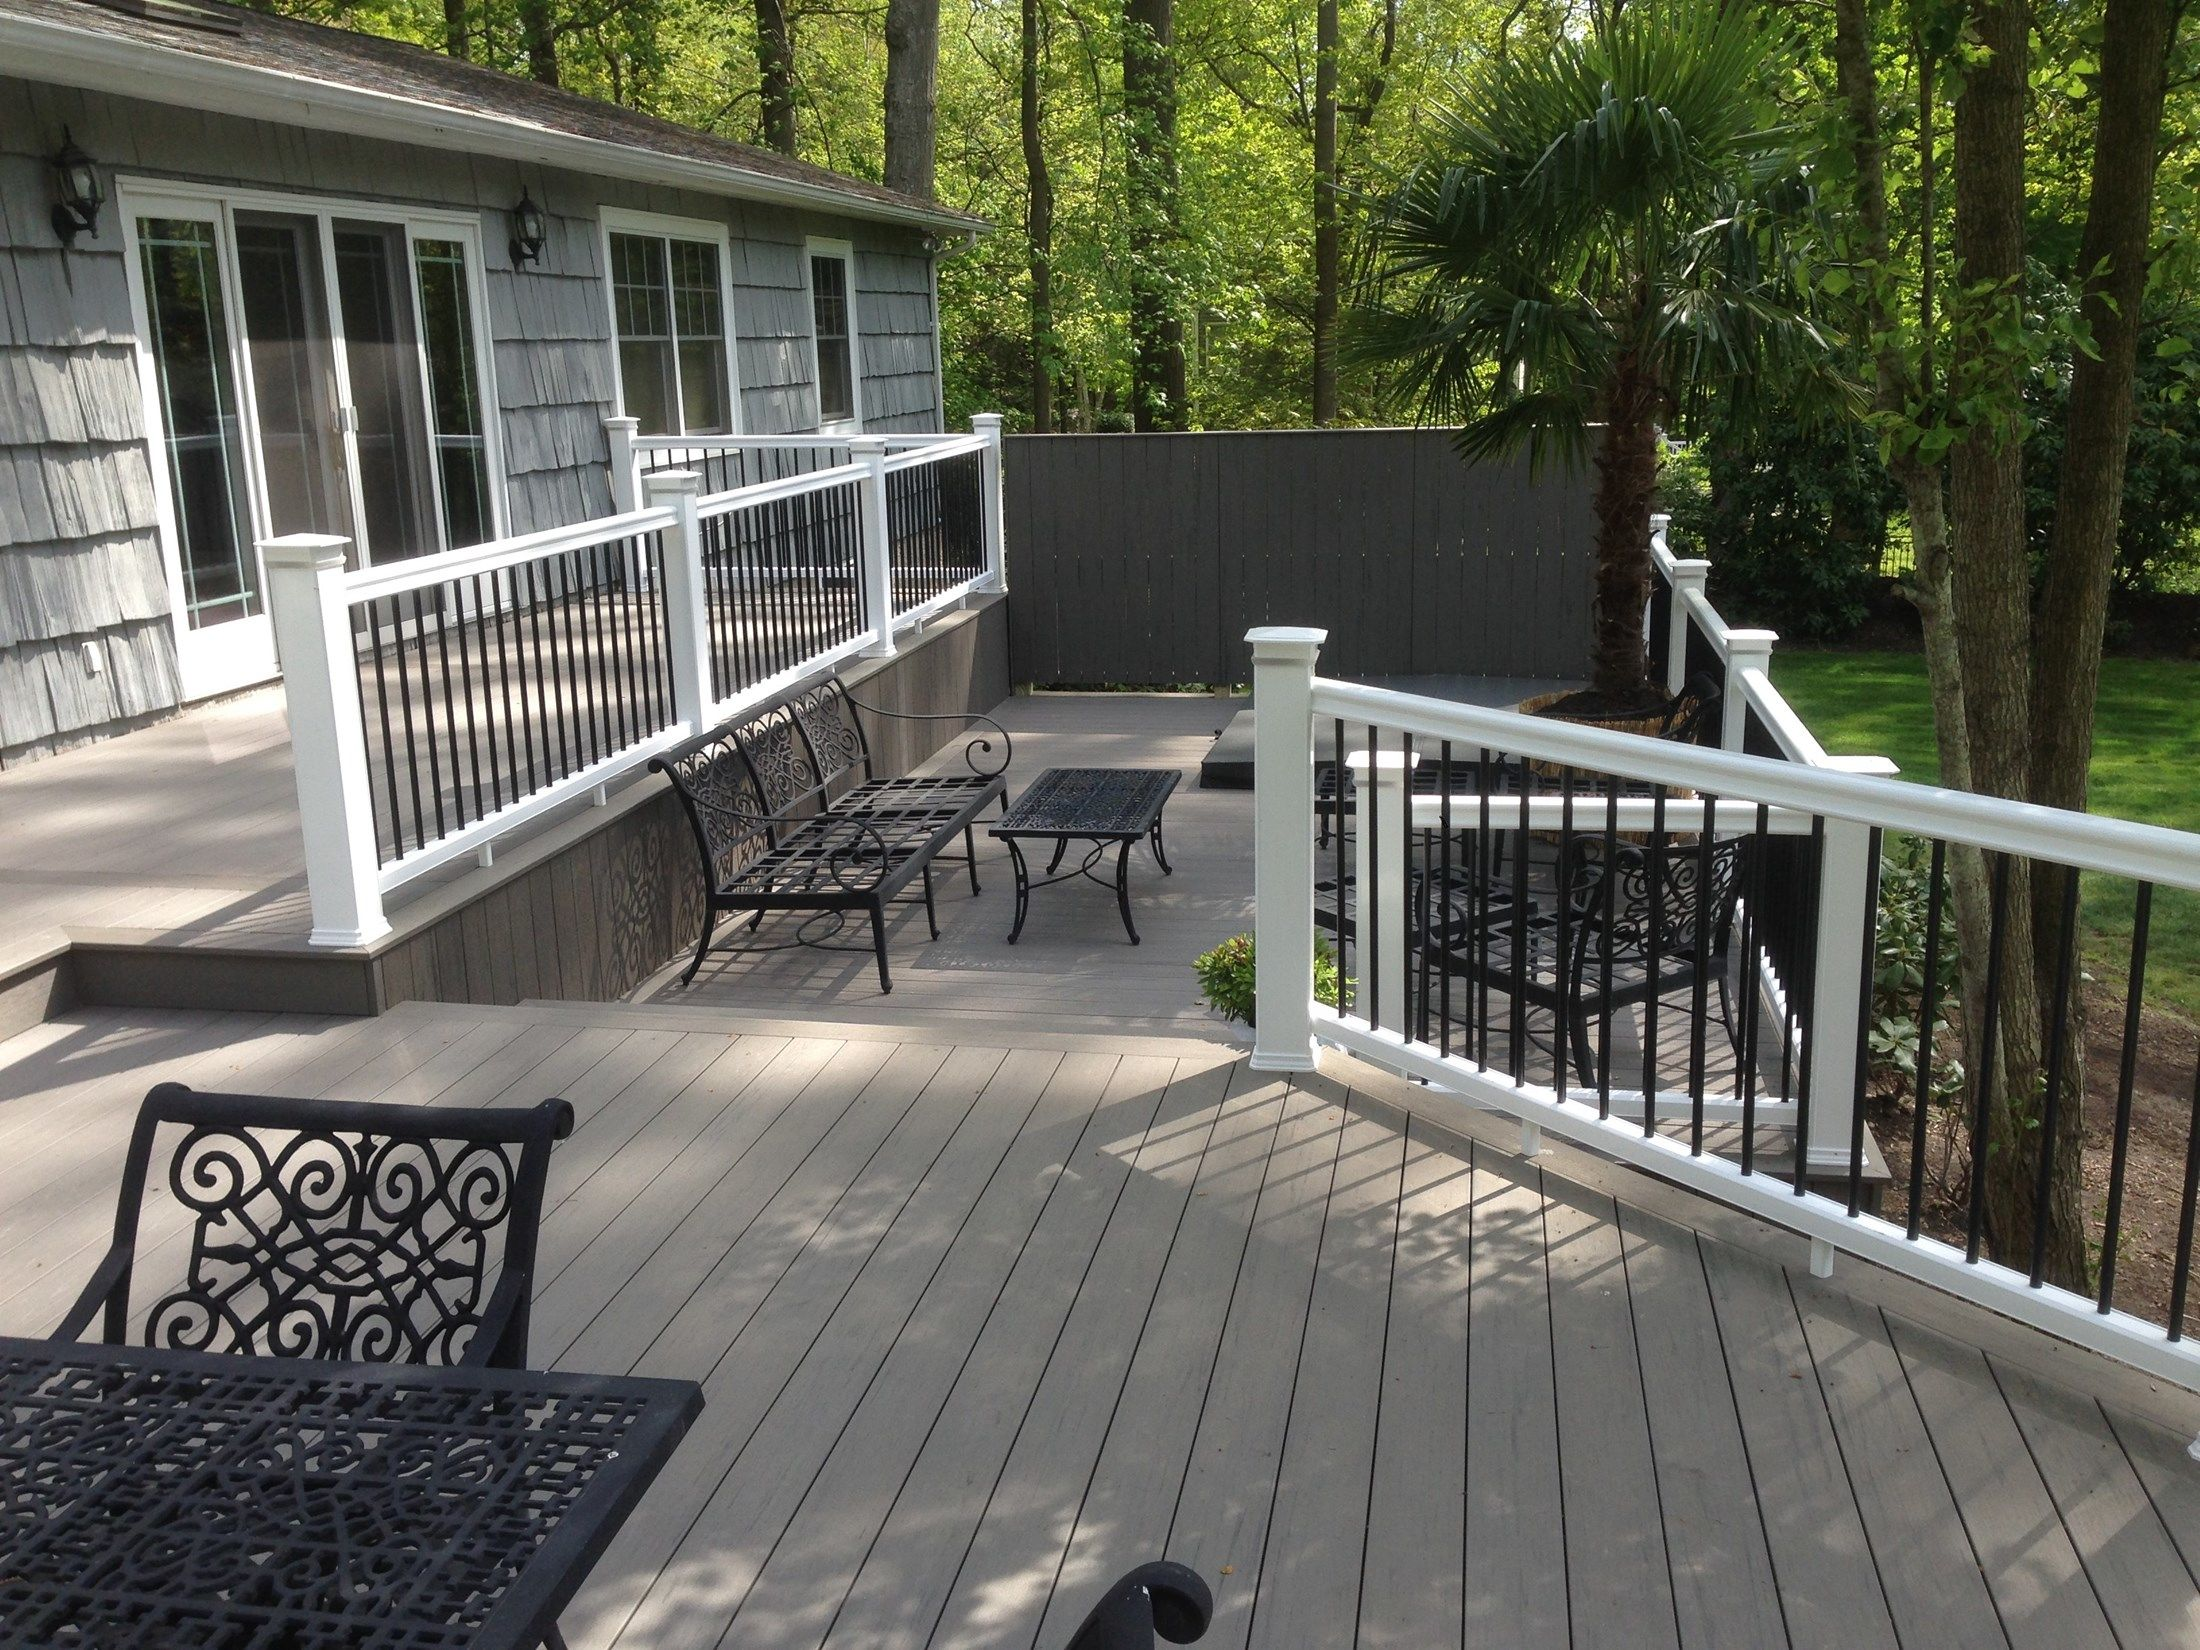 Multi-Level TimberTech Deck - Picture 6747